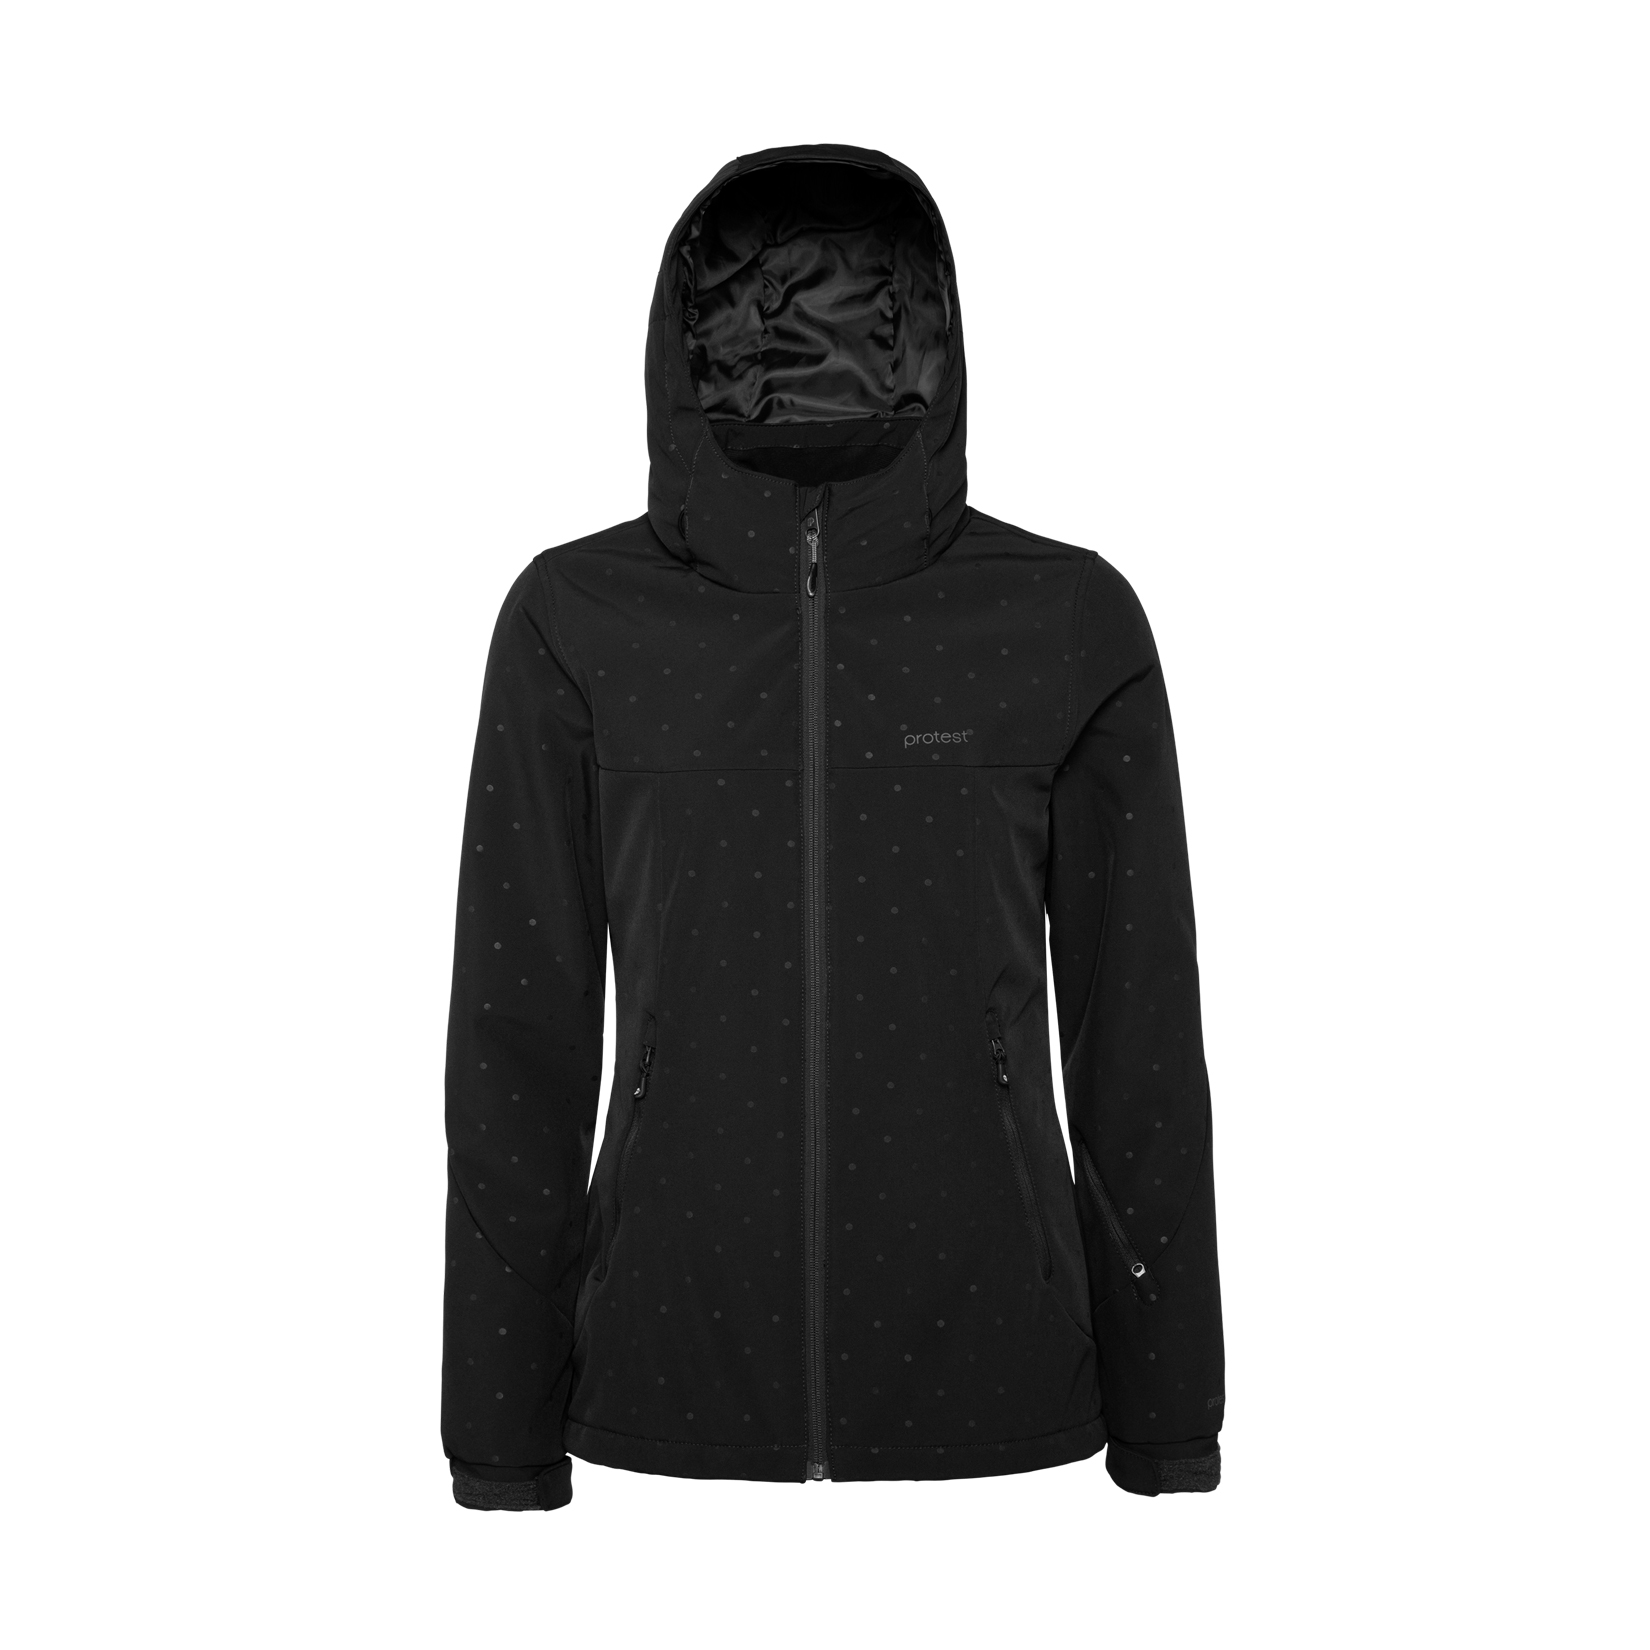 Protest Batida 19 Snowjacket SoftShell Black